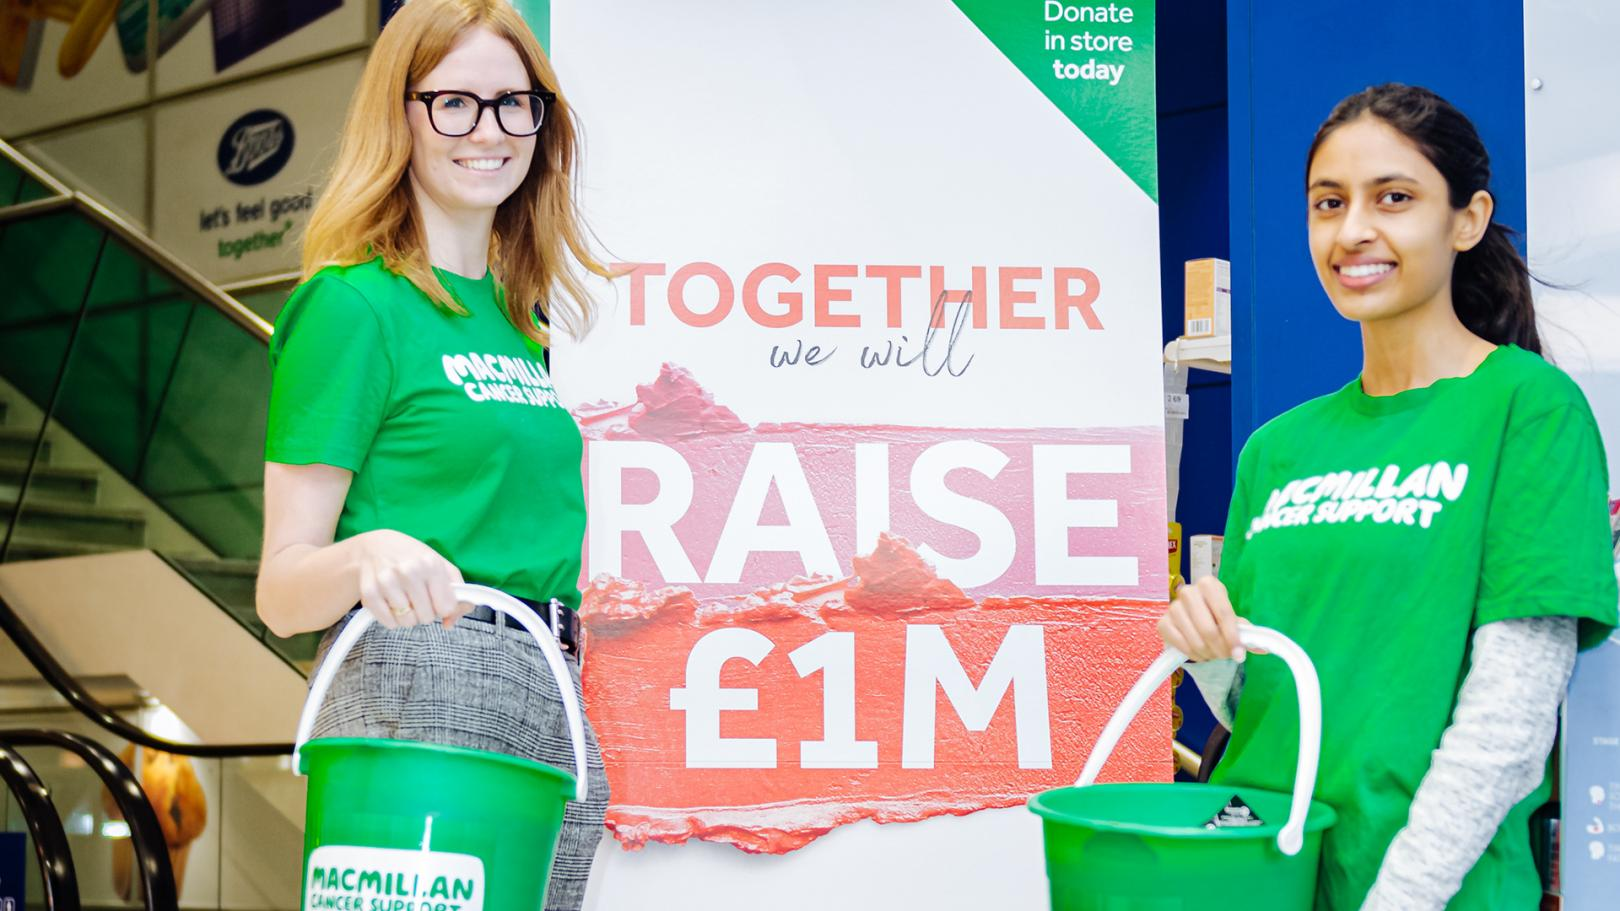 Two MacMillan volunteers holding donation buckets smiling at the camera